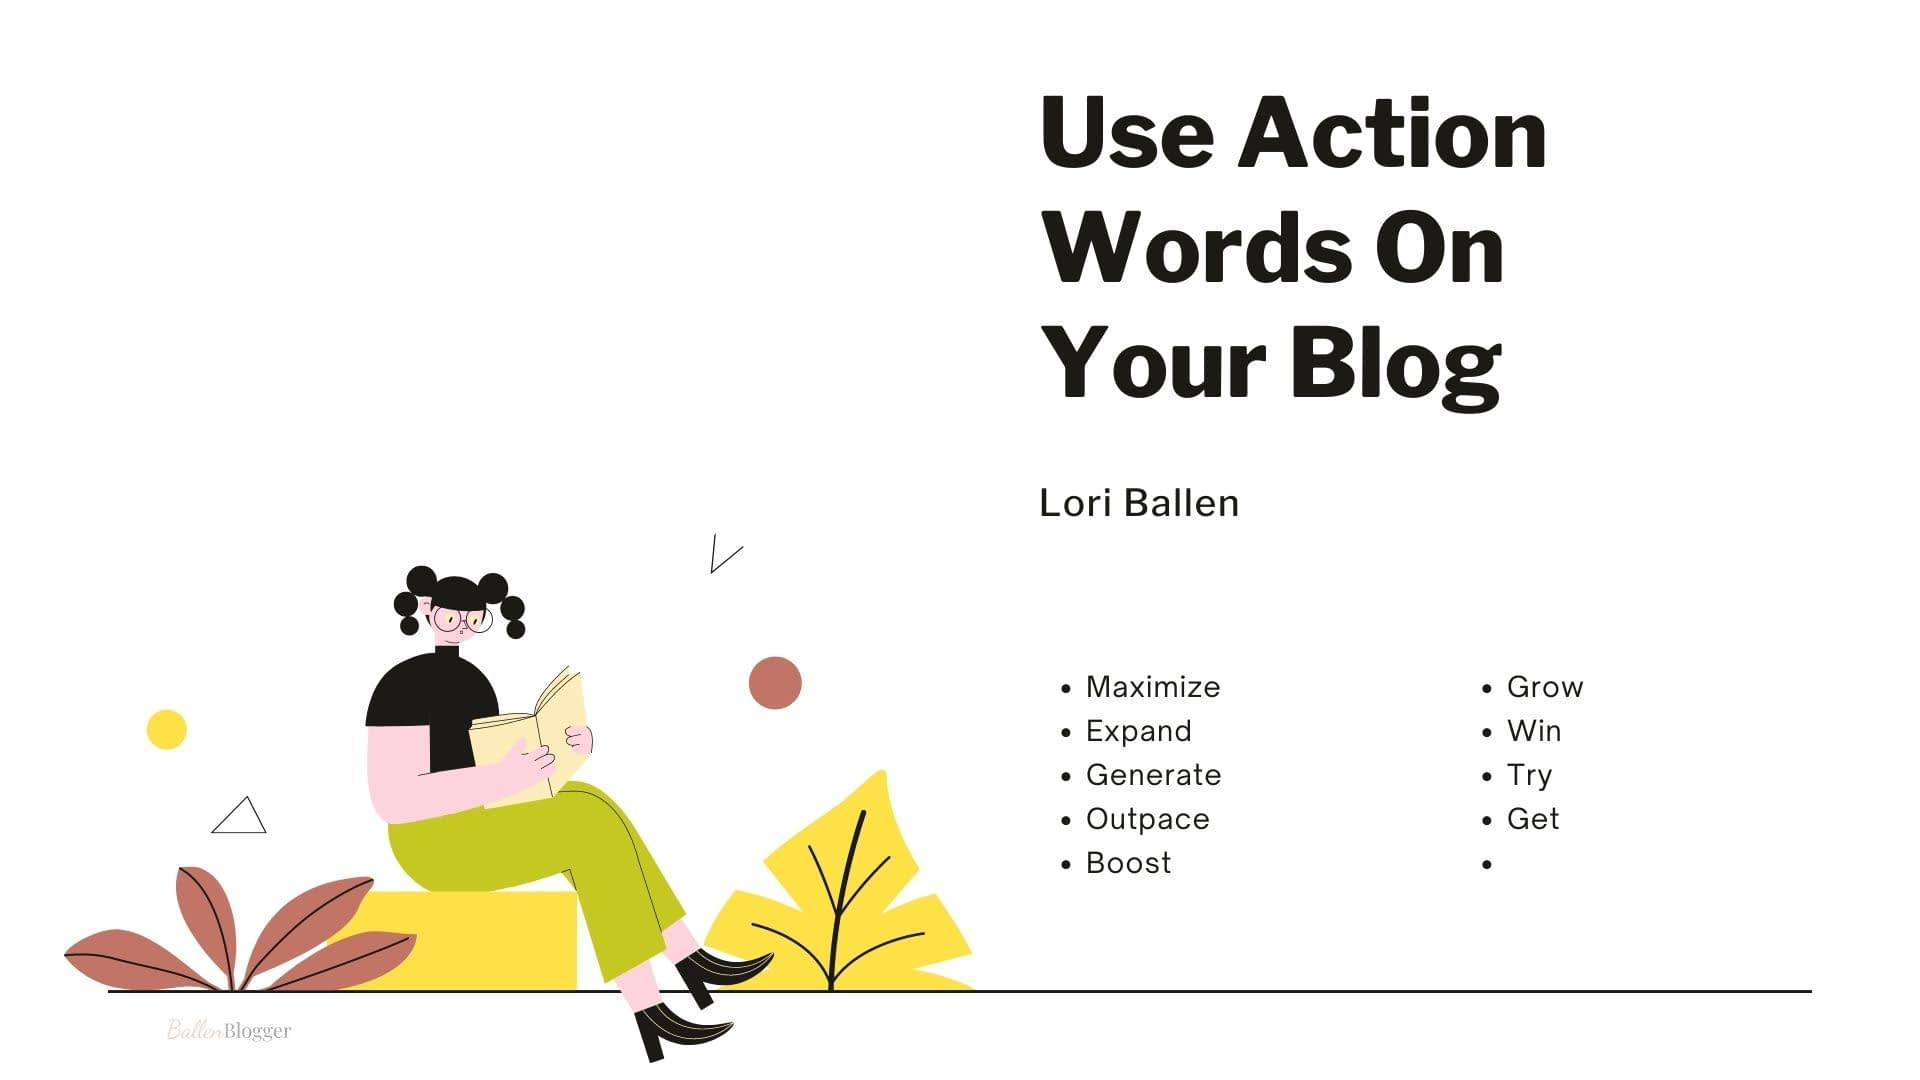 Using action words in a blog post title can give your blog content a sense of urgency and an appeal to action.